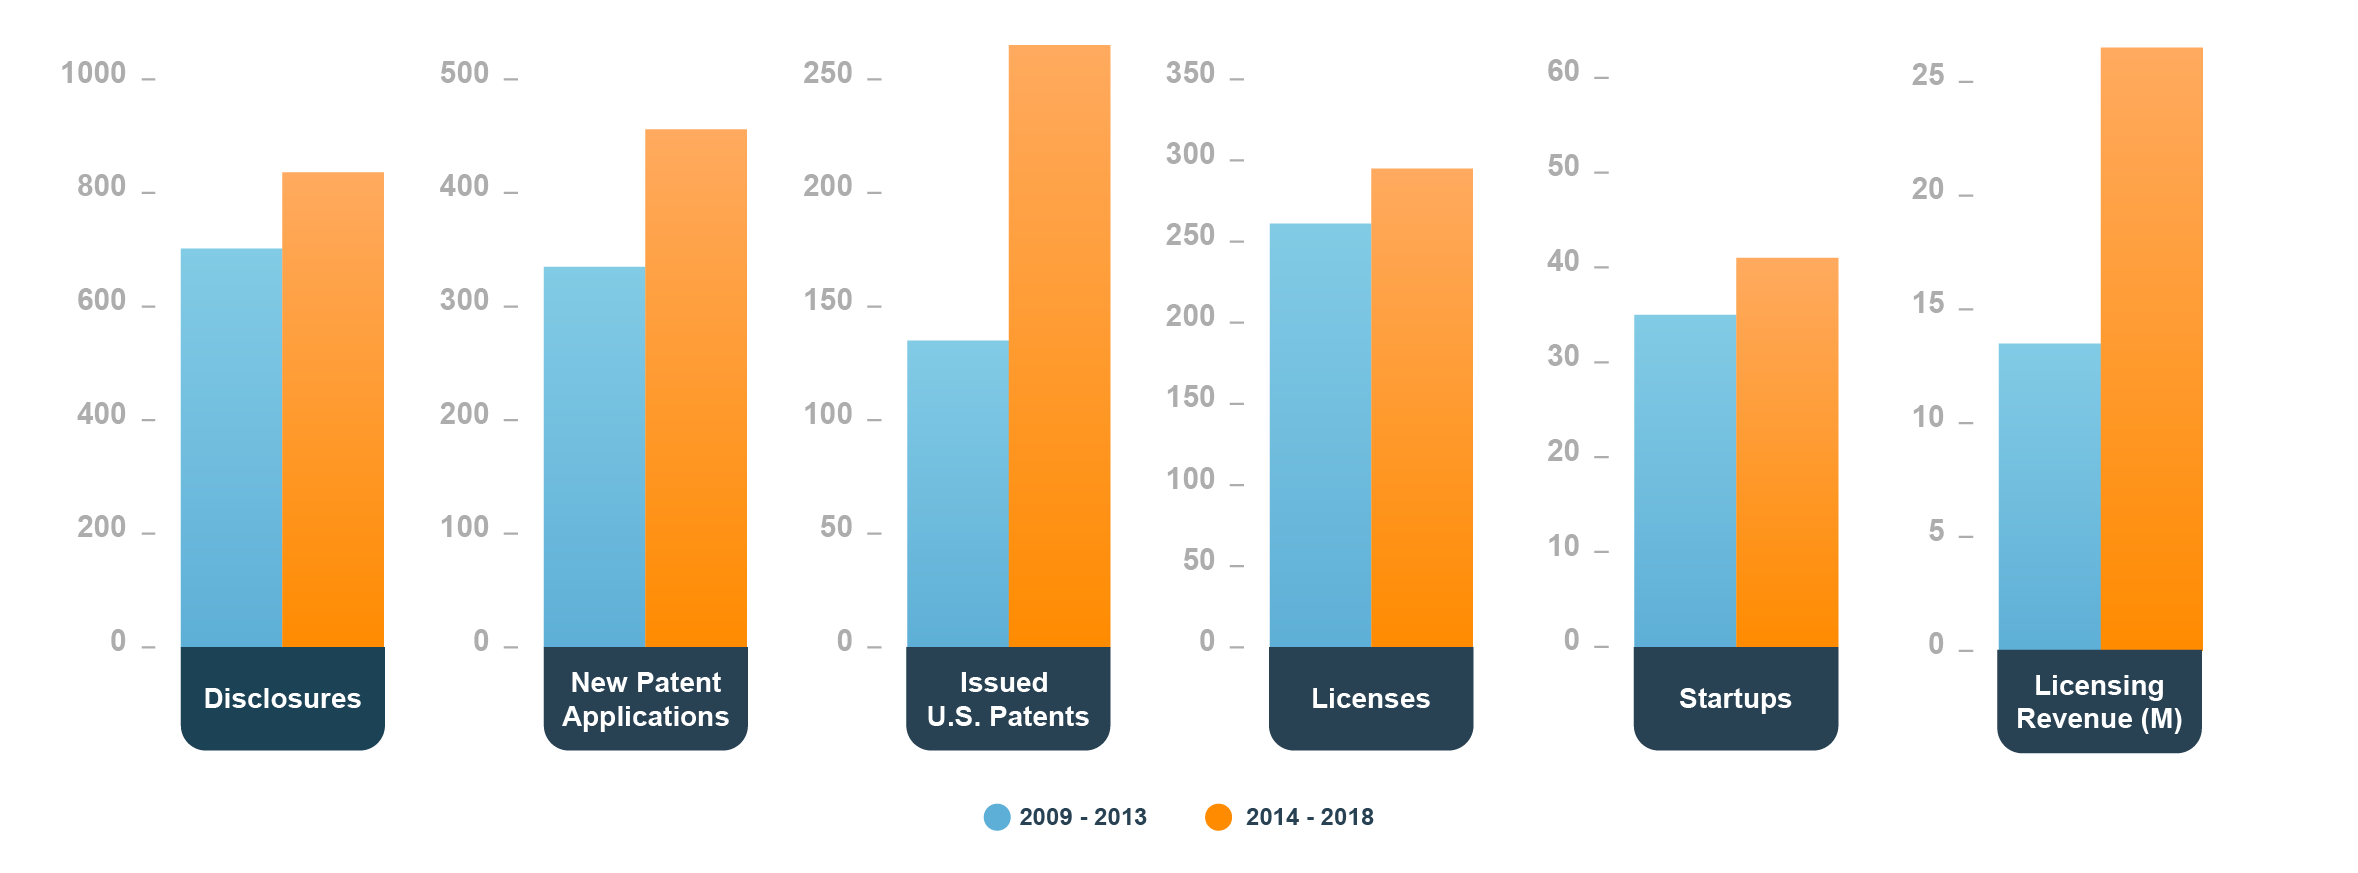 From 2009-2013: Disclosures: 702. New Patent Applications: 335. Issued US Patents: 135. Licenses: 261. Startups: 35. Licensing Revenue: $13.5 million. From 2014-2018: Disclosures: 835. New Patent Applications: 457. Issued US Patents: 267. Licenses: 319. Startups: 41. Licensing Revenue: $26.5 million.